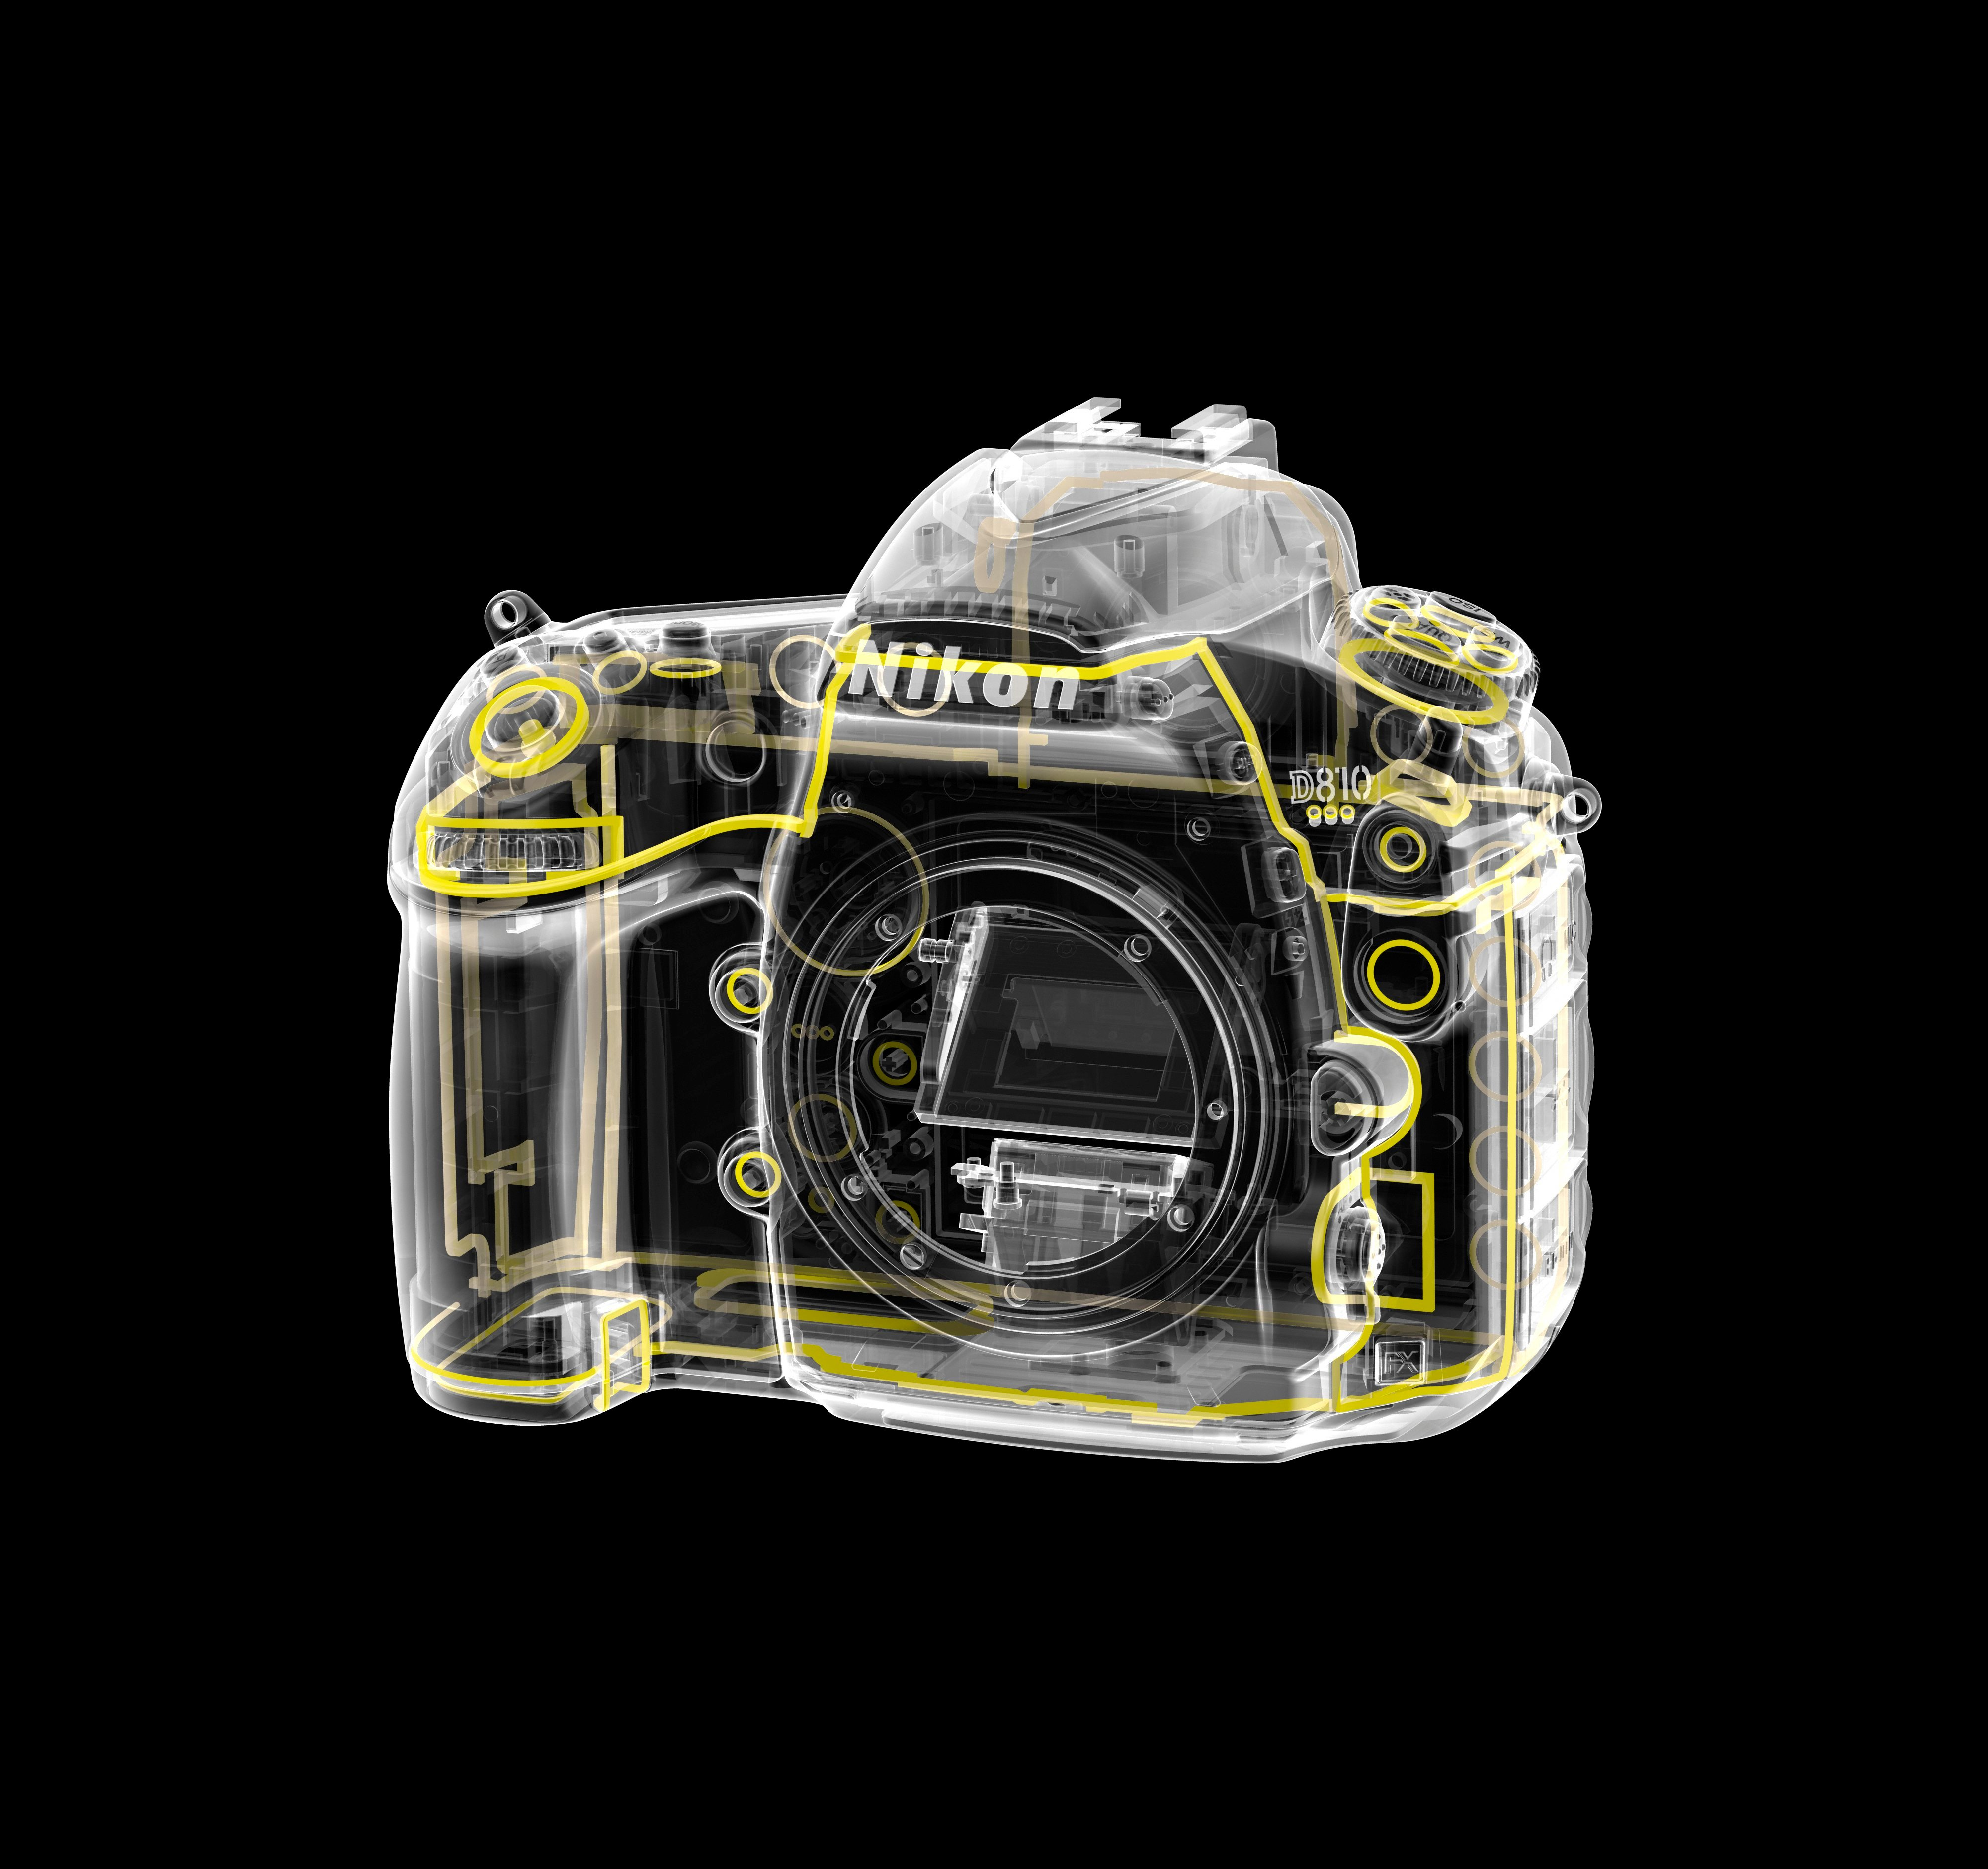 Nikon D810 review - first look, release date and UK price